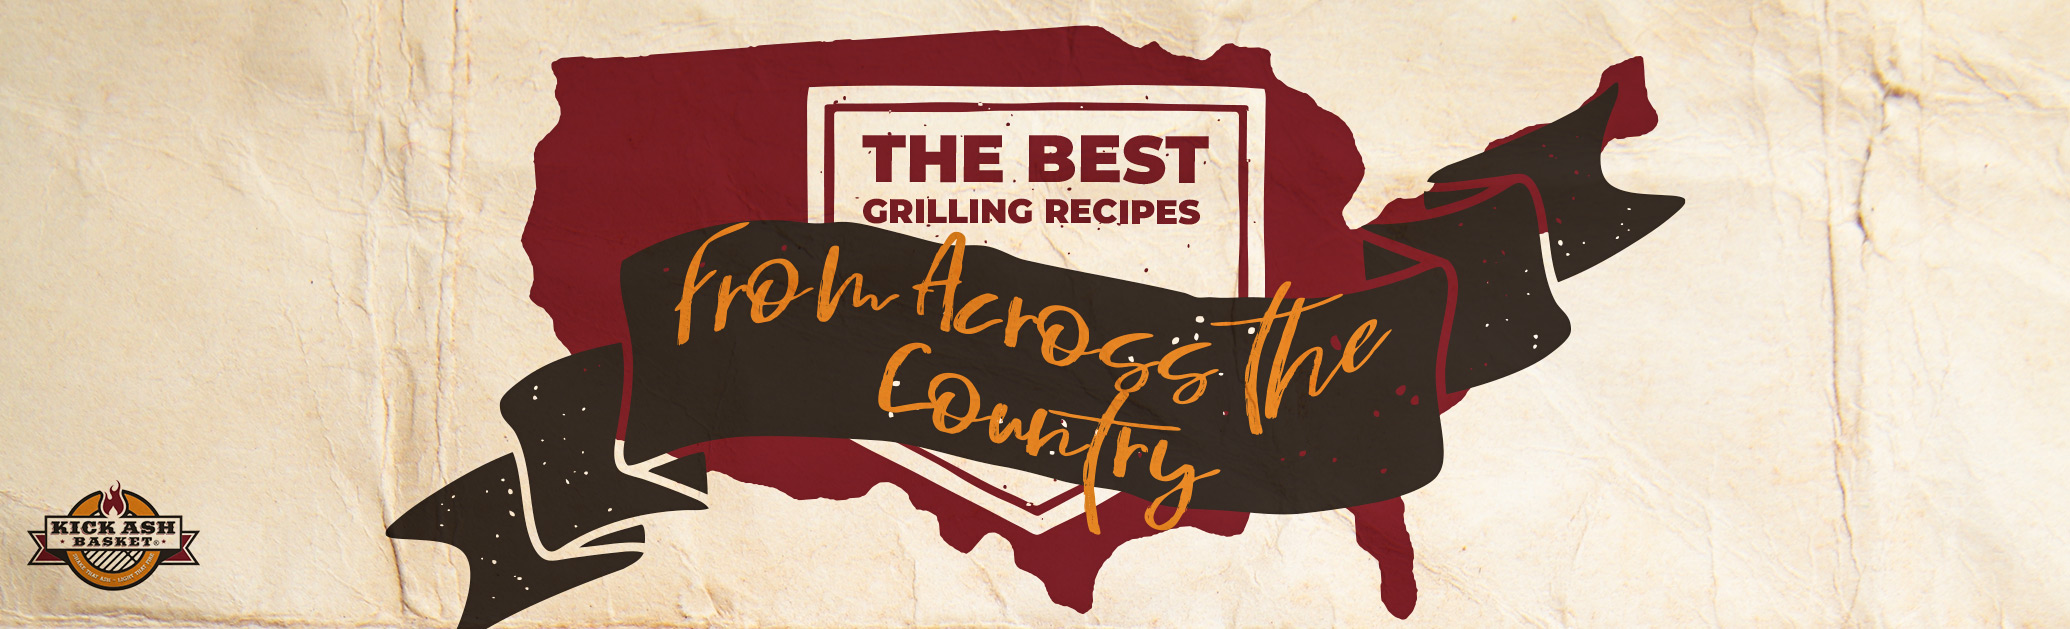 The Best Grilling Recipes From Across the Country